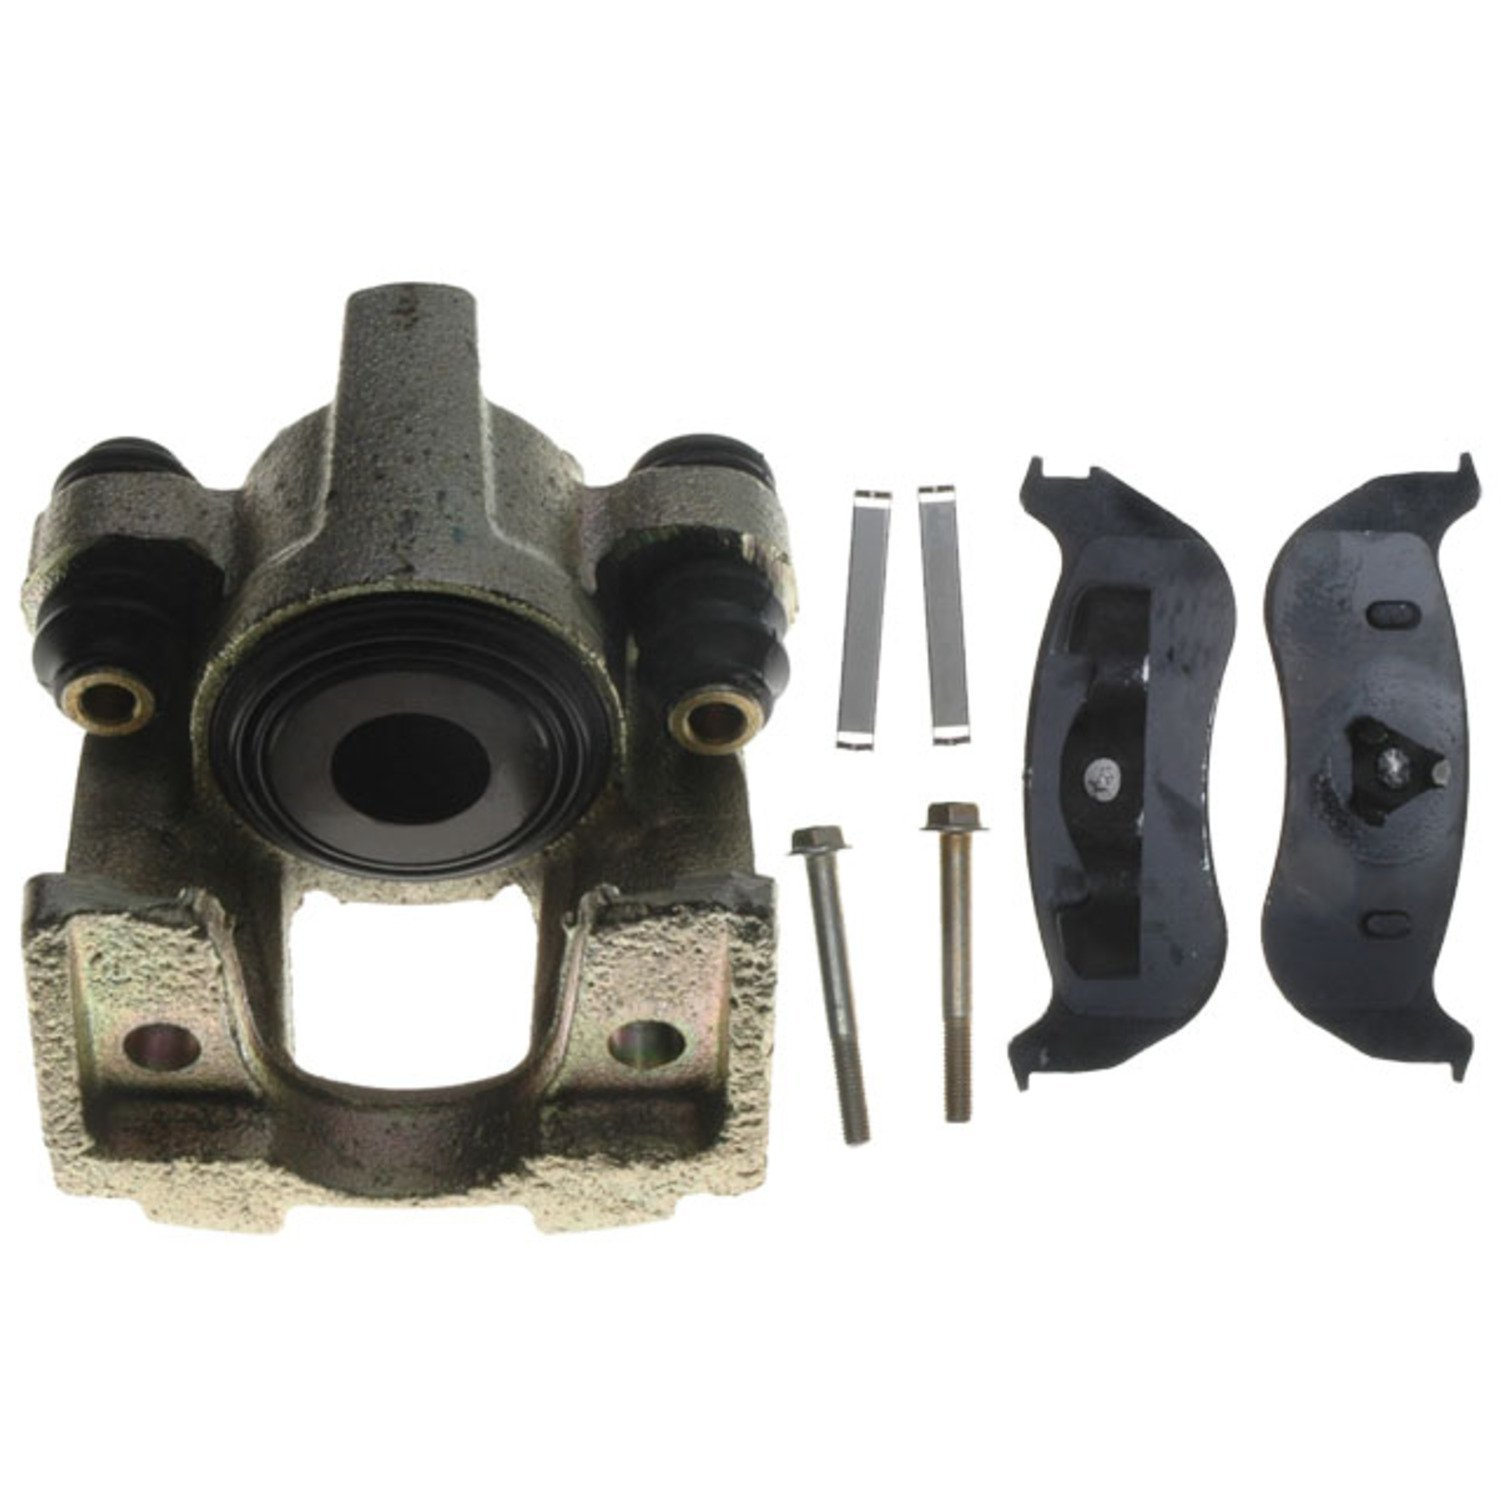 Remanufactured Loaded ACDelco 18R1914SV Specialty Rear Disc Brake Caliper Assembly with Performance Fleet//Police Pads